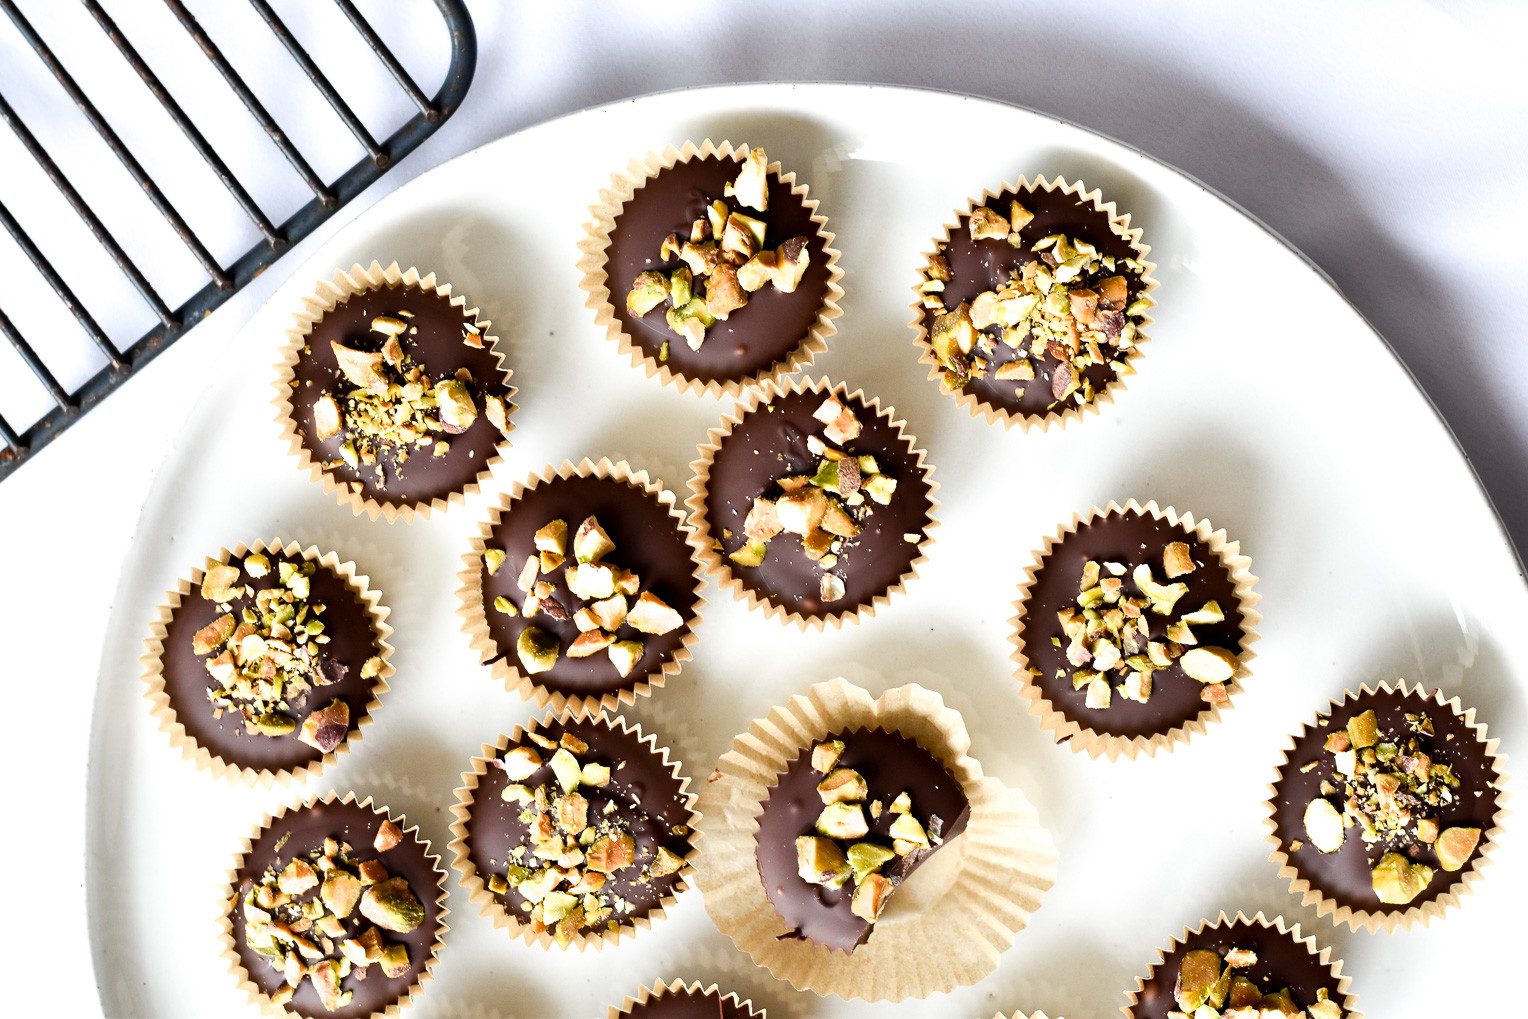 Dark Chocolate Peanut Butter Cups